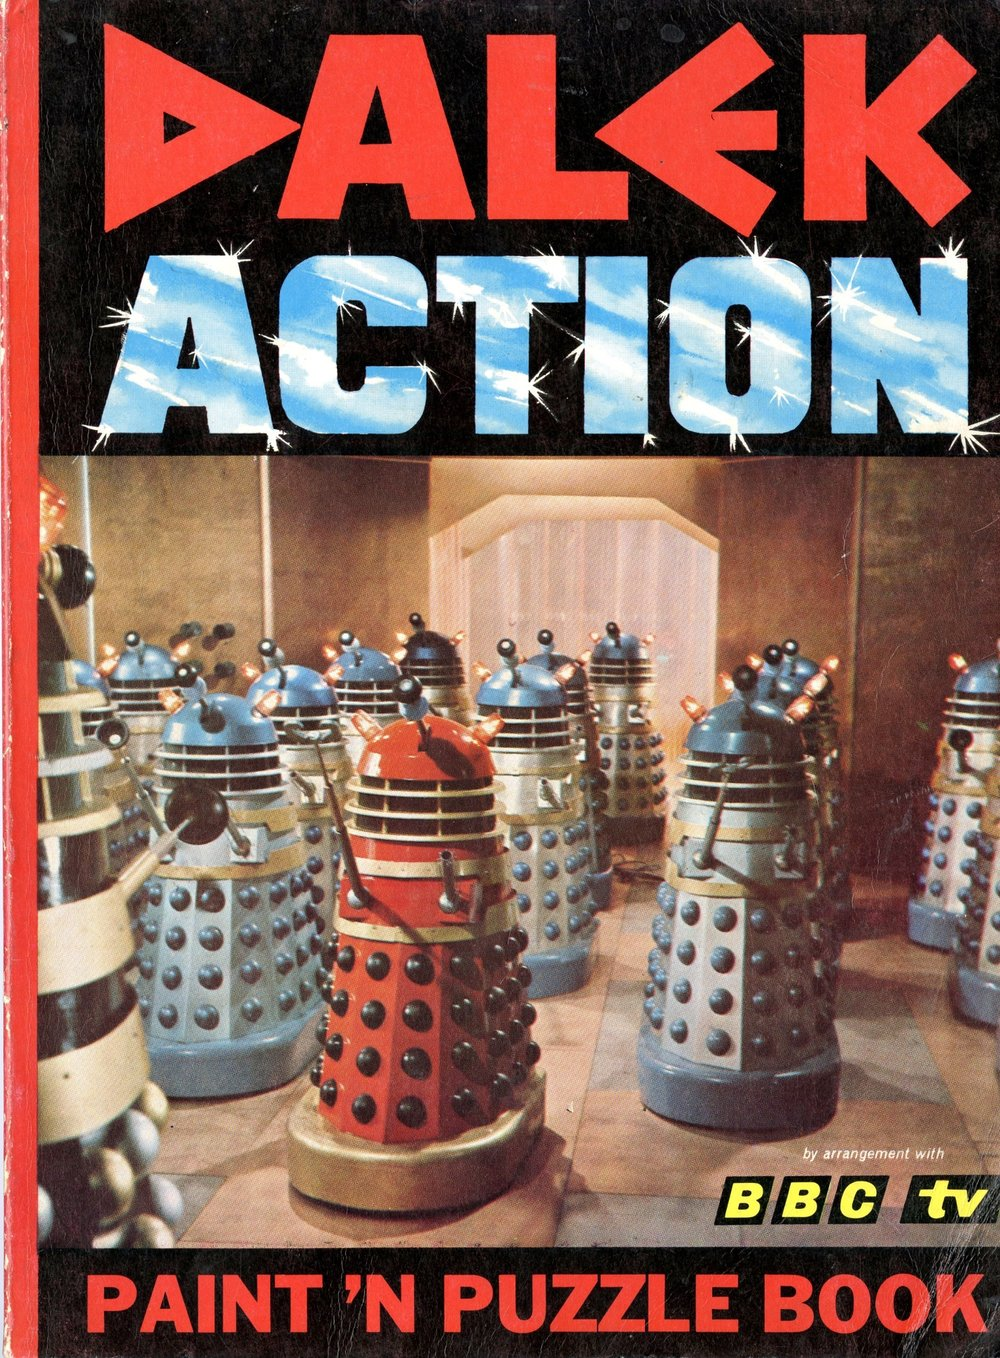 Souvenir Press Ltd., Dalek Action Paint 'n Puzzle Book